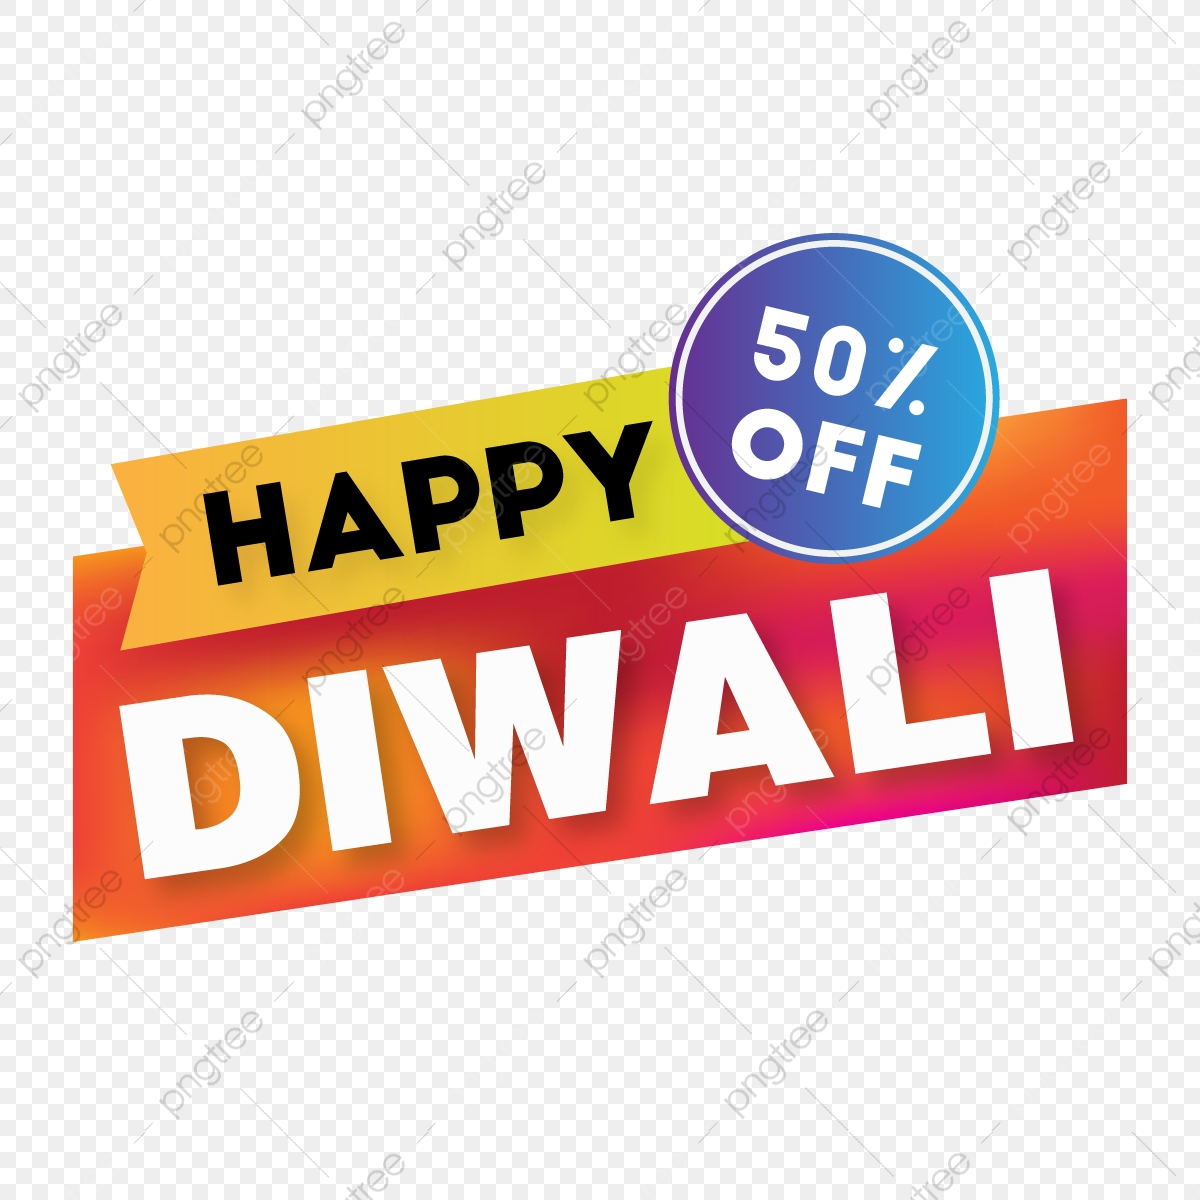 Special Happy Diwali Offer Sticker Label, Diwali, Festival.